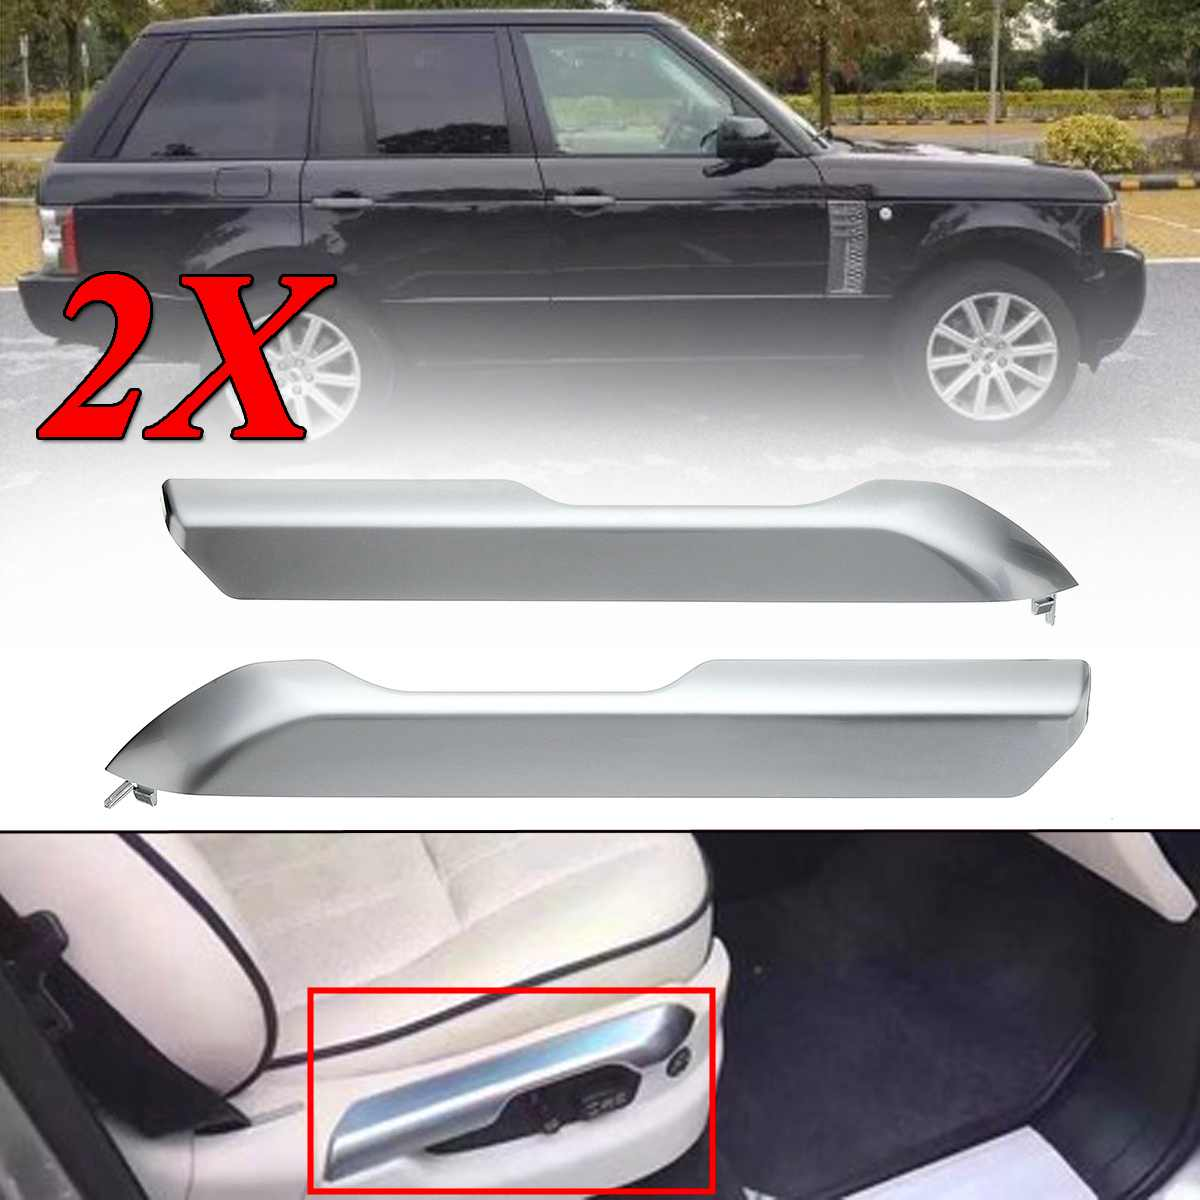 2pcs New Car Front Seat Cushion Valance Chrome Cover Trim For Land Rover Range Rover 2004-2012 Interior Mouldings2pcs New Car Front Seat Cushion Valance Chrome Cover Trim For Land Rover Range Rover 2004-2012 Interior Mouldings